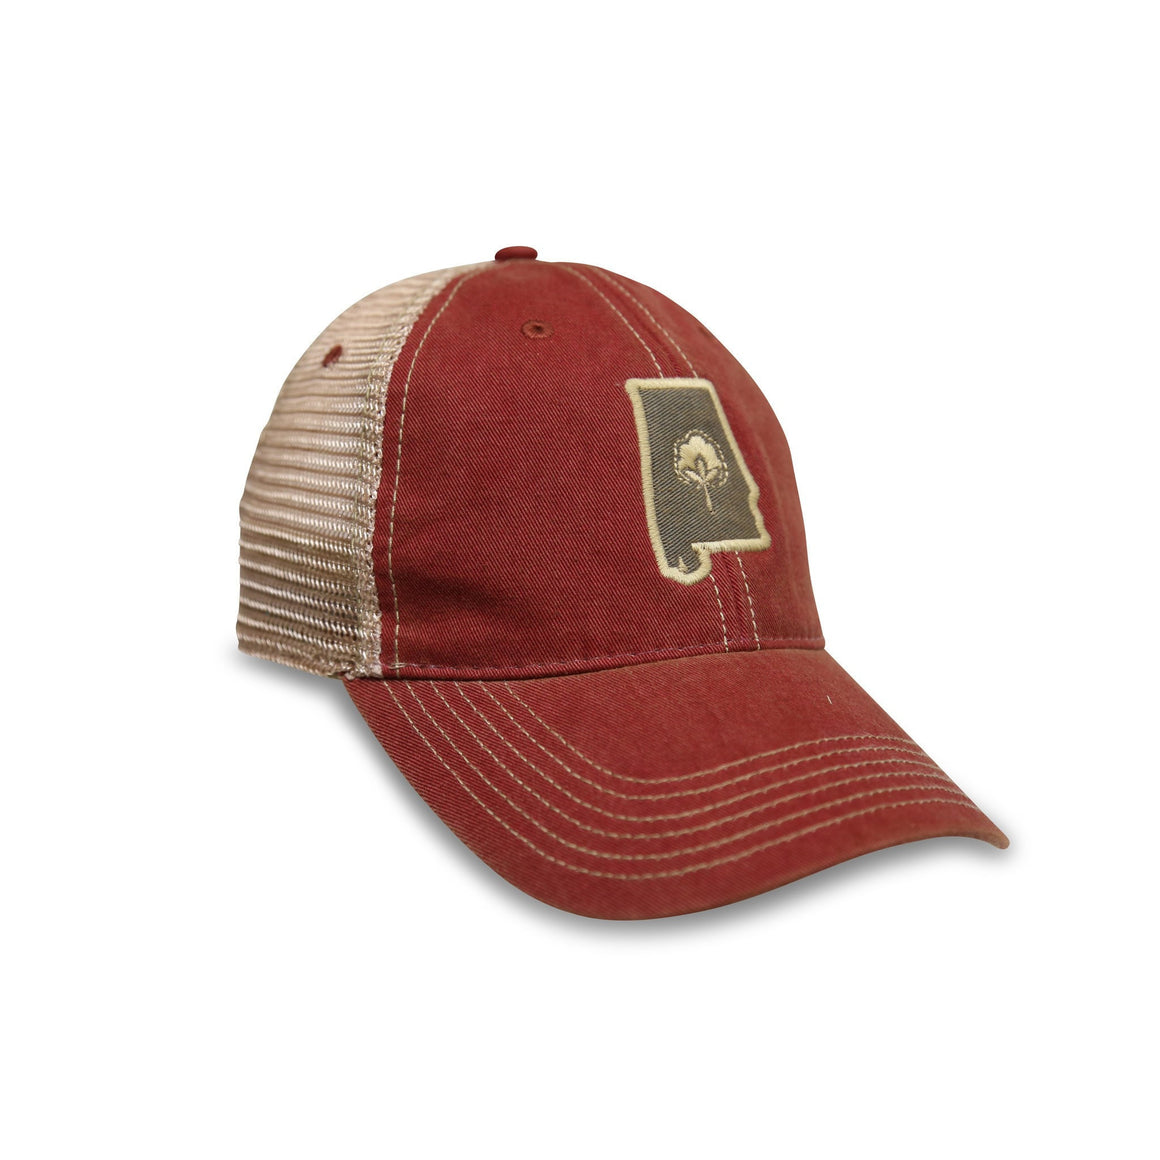 7e1bdeab0bf0b ... trucker hats 62b9d ba3e0 inexpensive old state pride hats crimson and  grey alabama al old favorite hats 6d3a7 c73ae ...